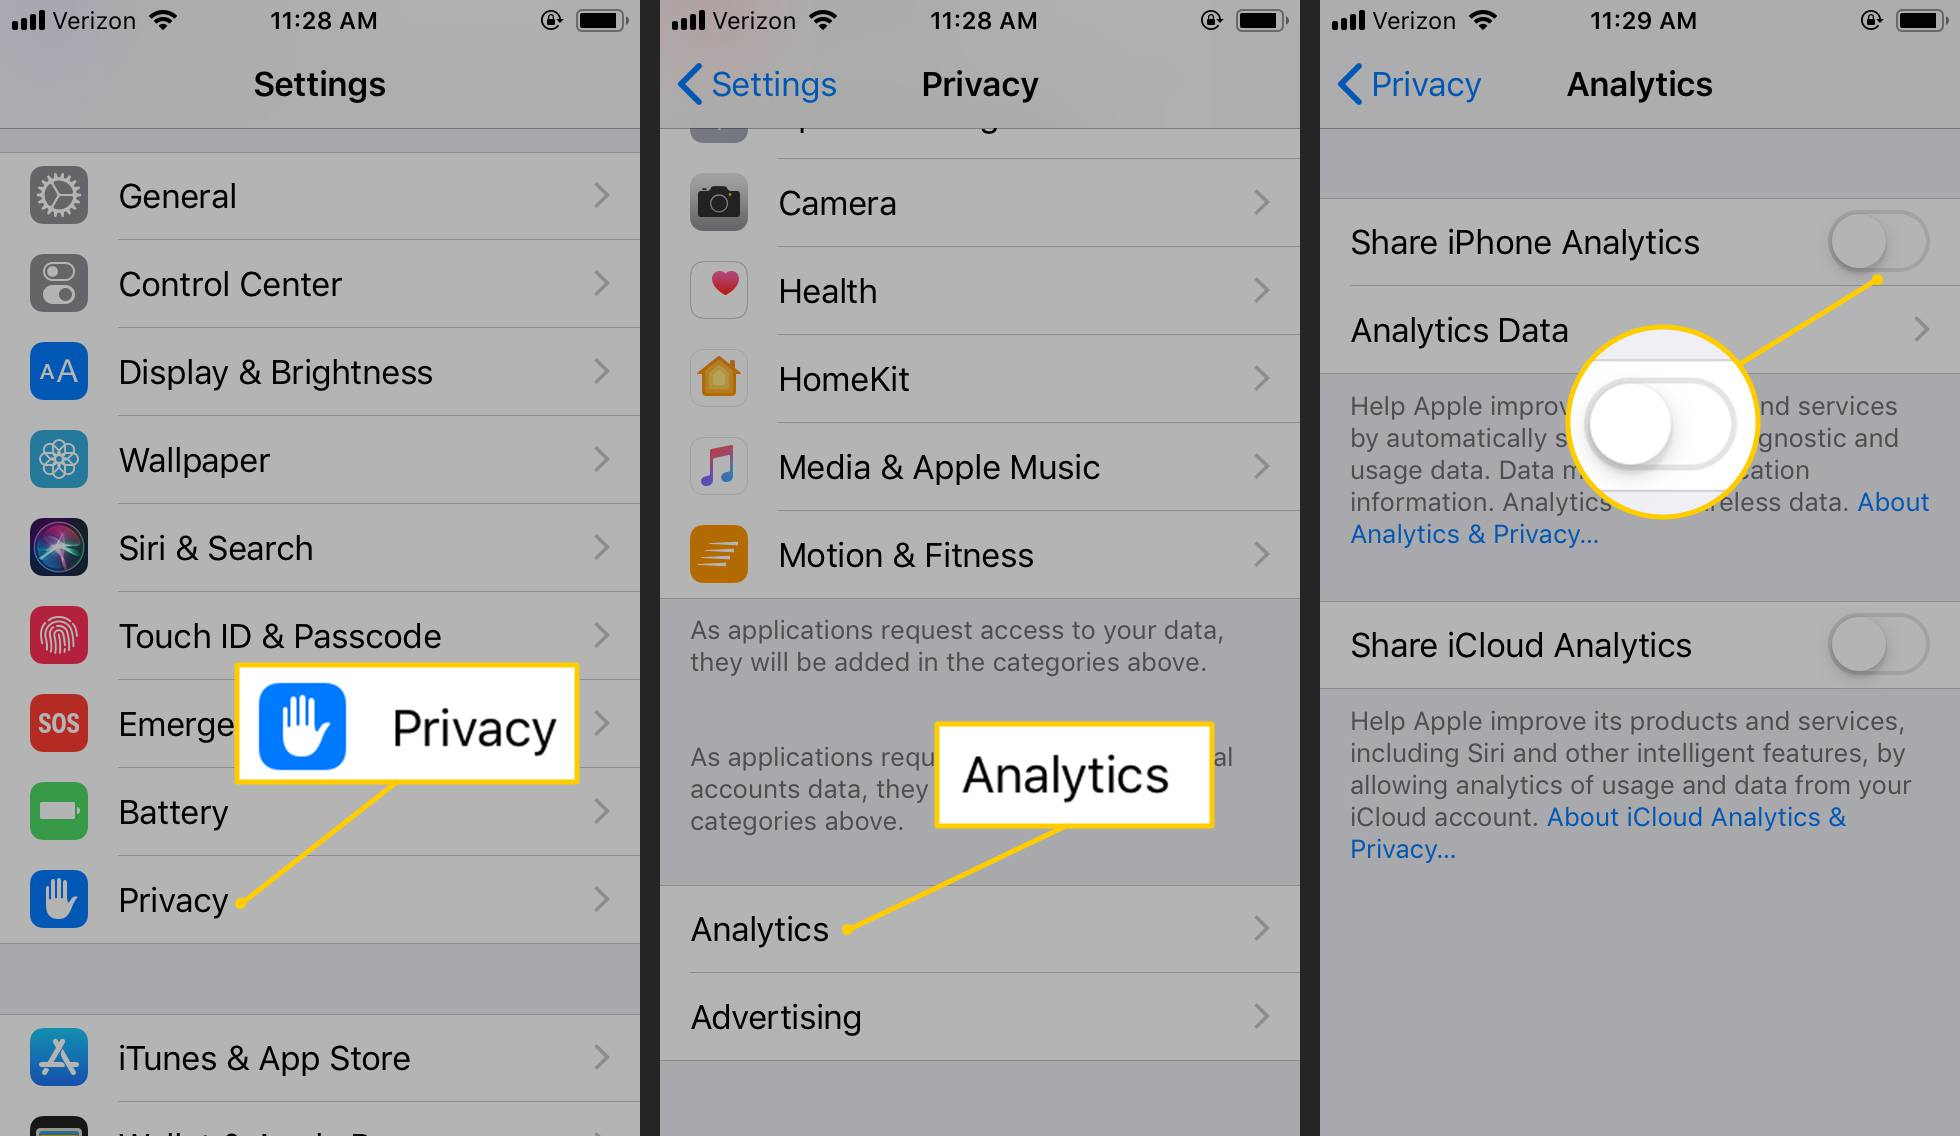 Privacy, Analytics, Share iPhone Analytics toggle to OFF